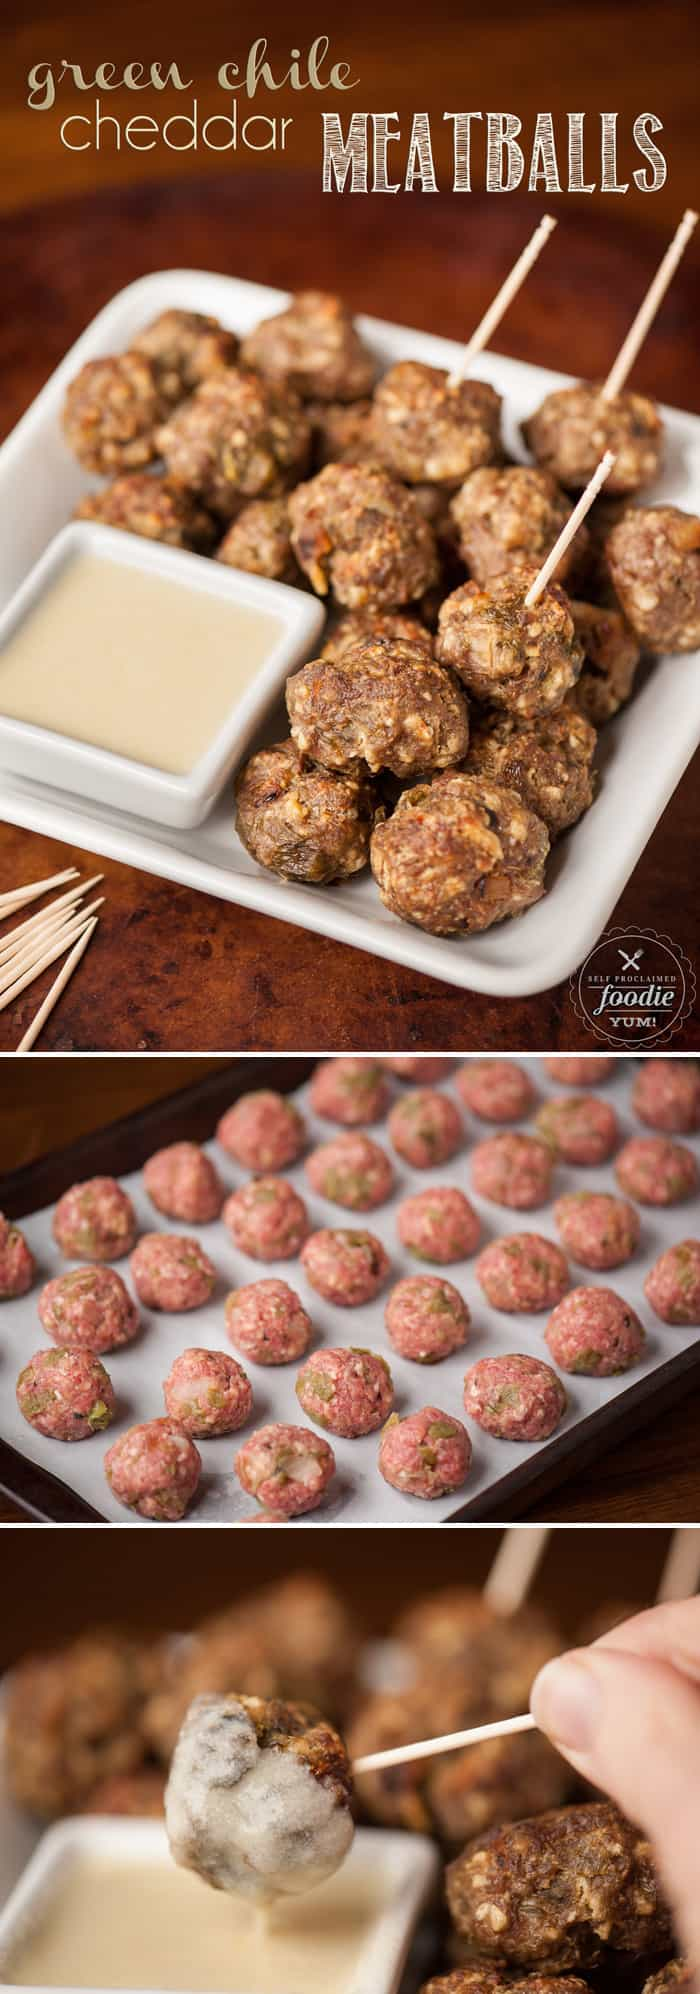 Five ingredient Green Chile Cheddar Meatballs are easy to make, taste fantastic with white cheddar cheese sauce, & can be eaten as a main dish or appetizer.